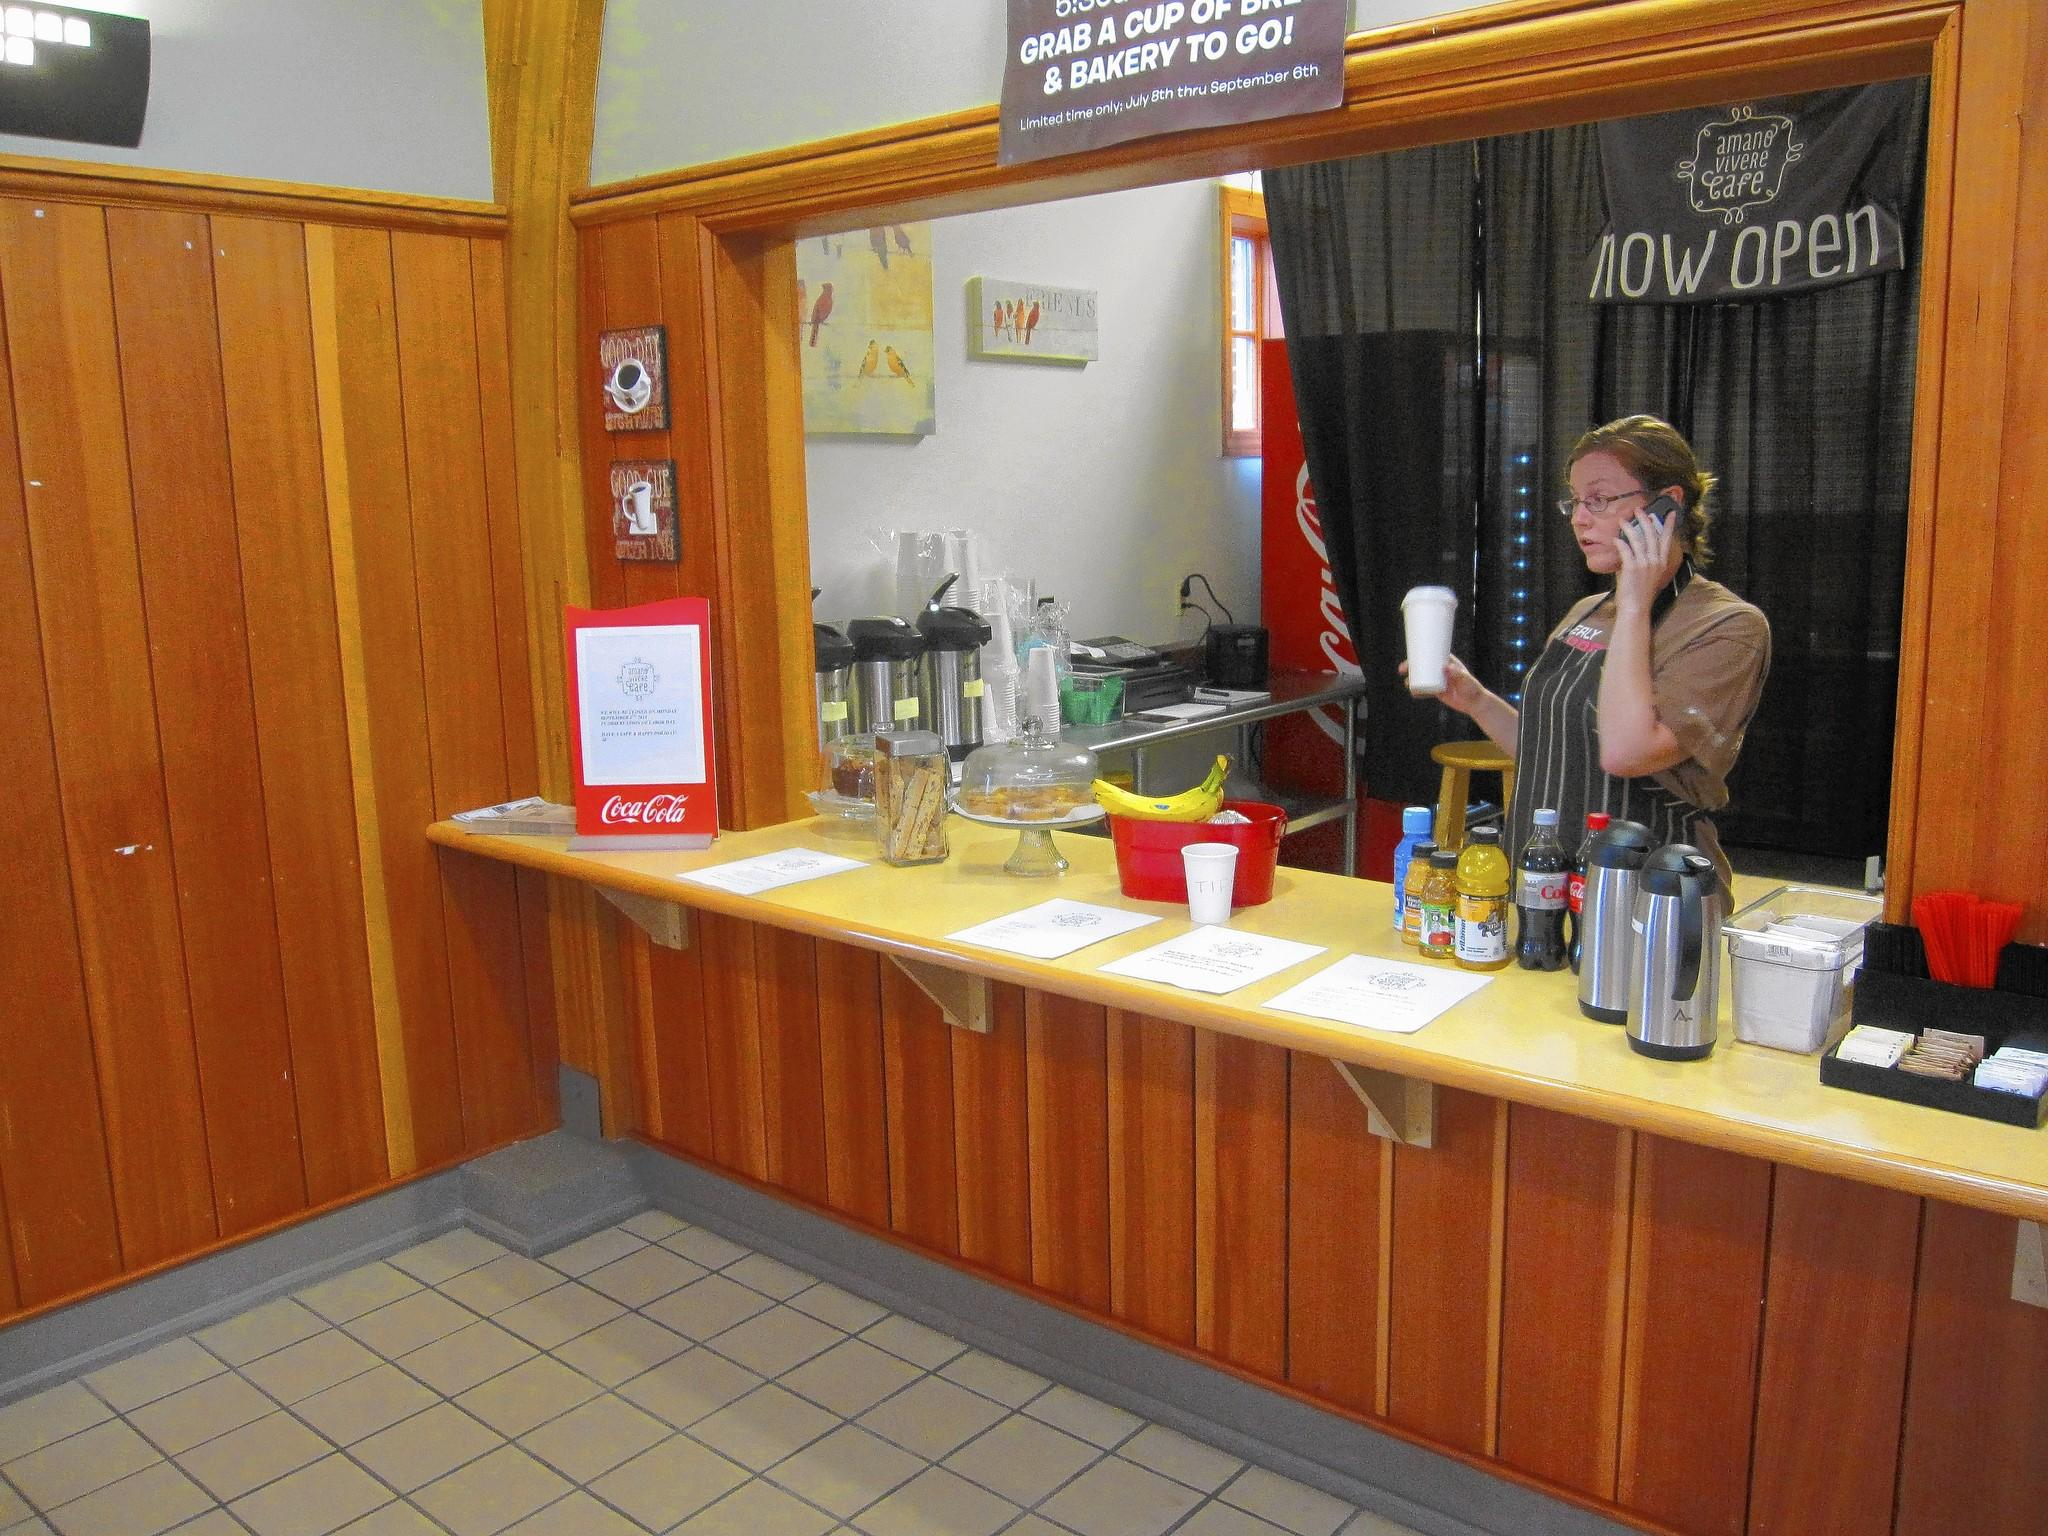 Rita Murphy sells coffee at the concession counter inside the 143rd Street Metra Station in Orland Park. The counter is operated by nearby Amano Vivere Cafe.